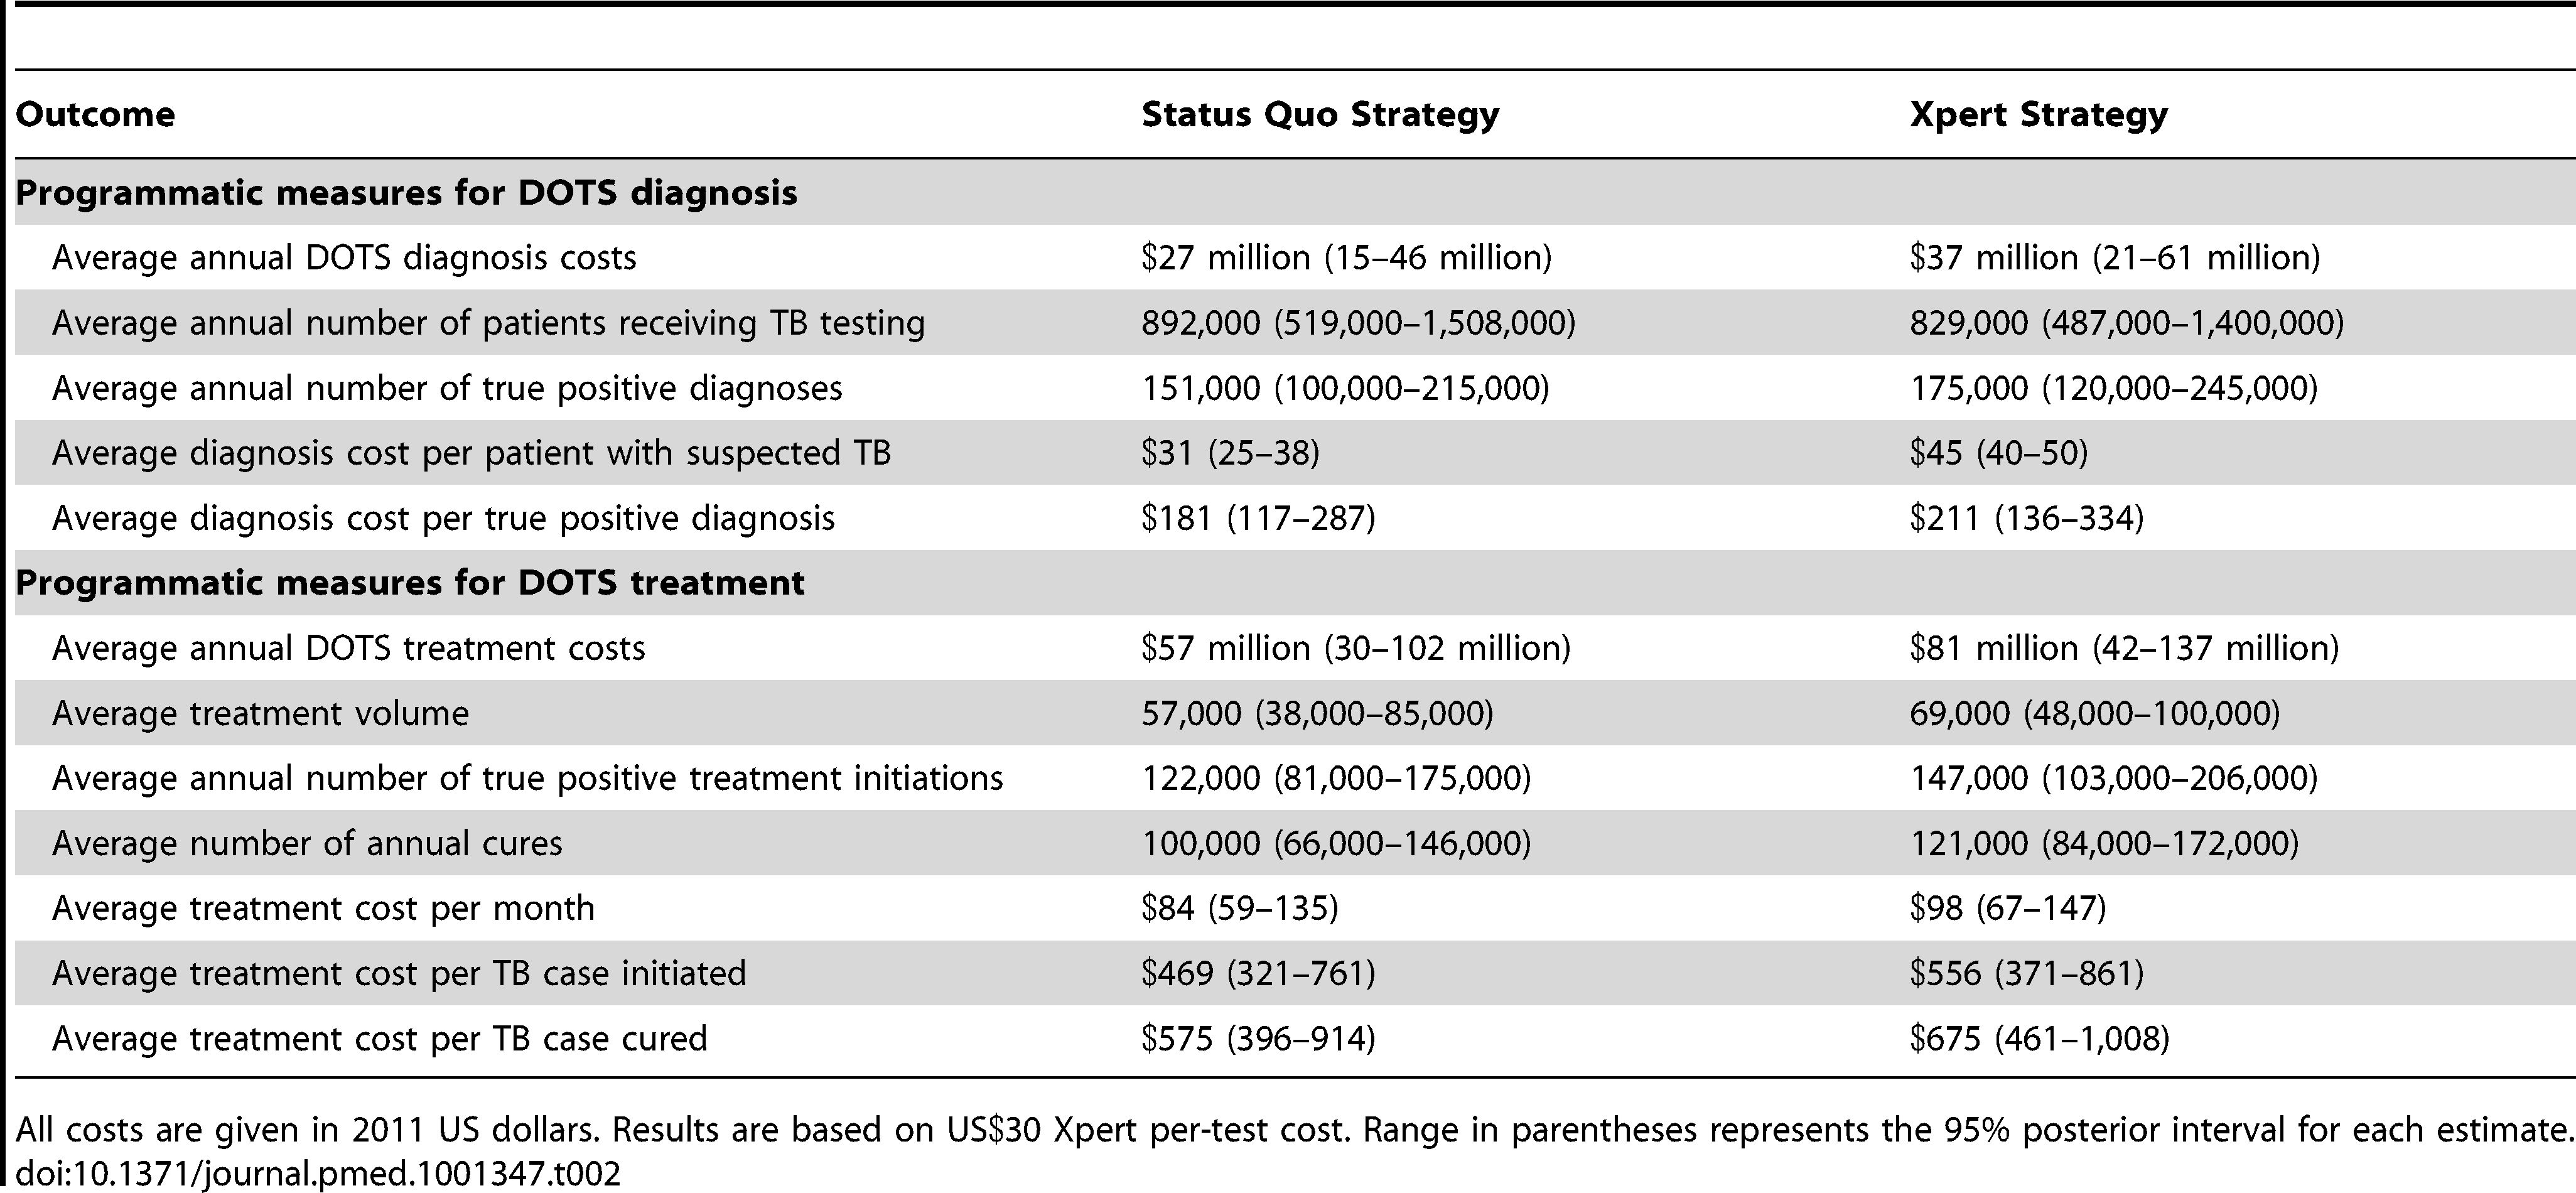 Average programmatic outcomes and costs over 10 y following choice of strategy.